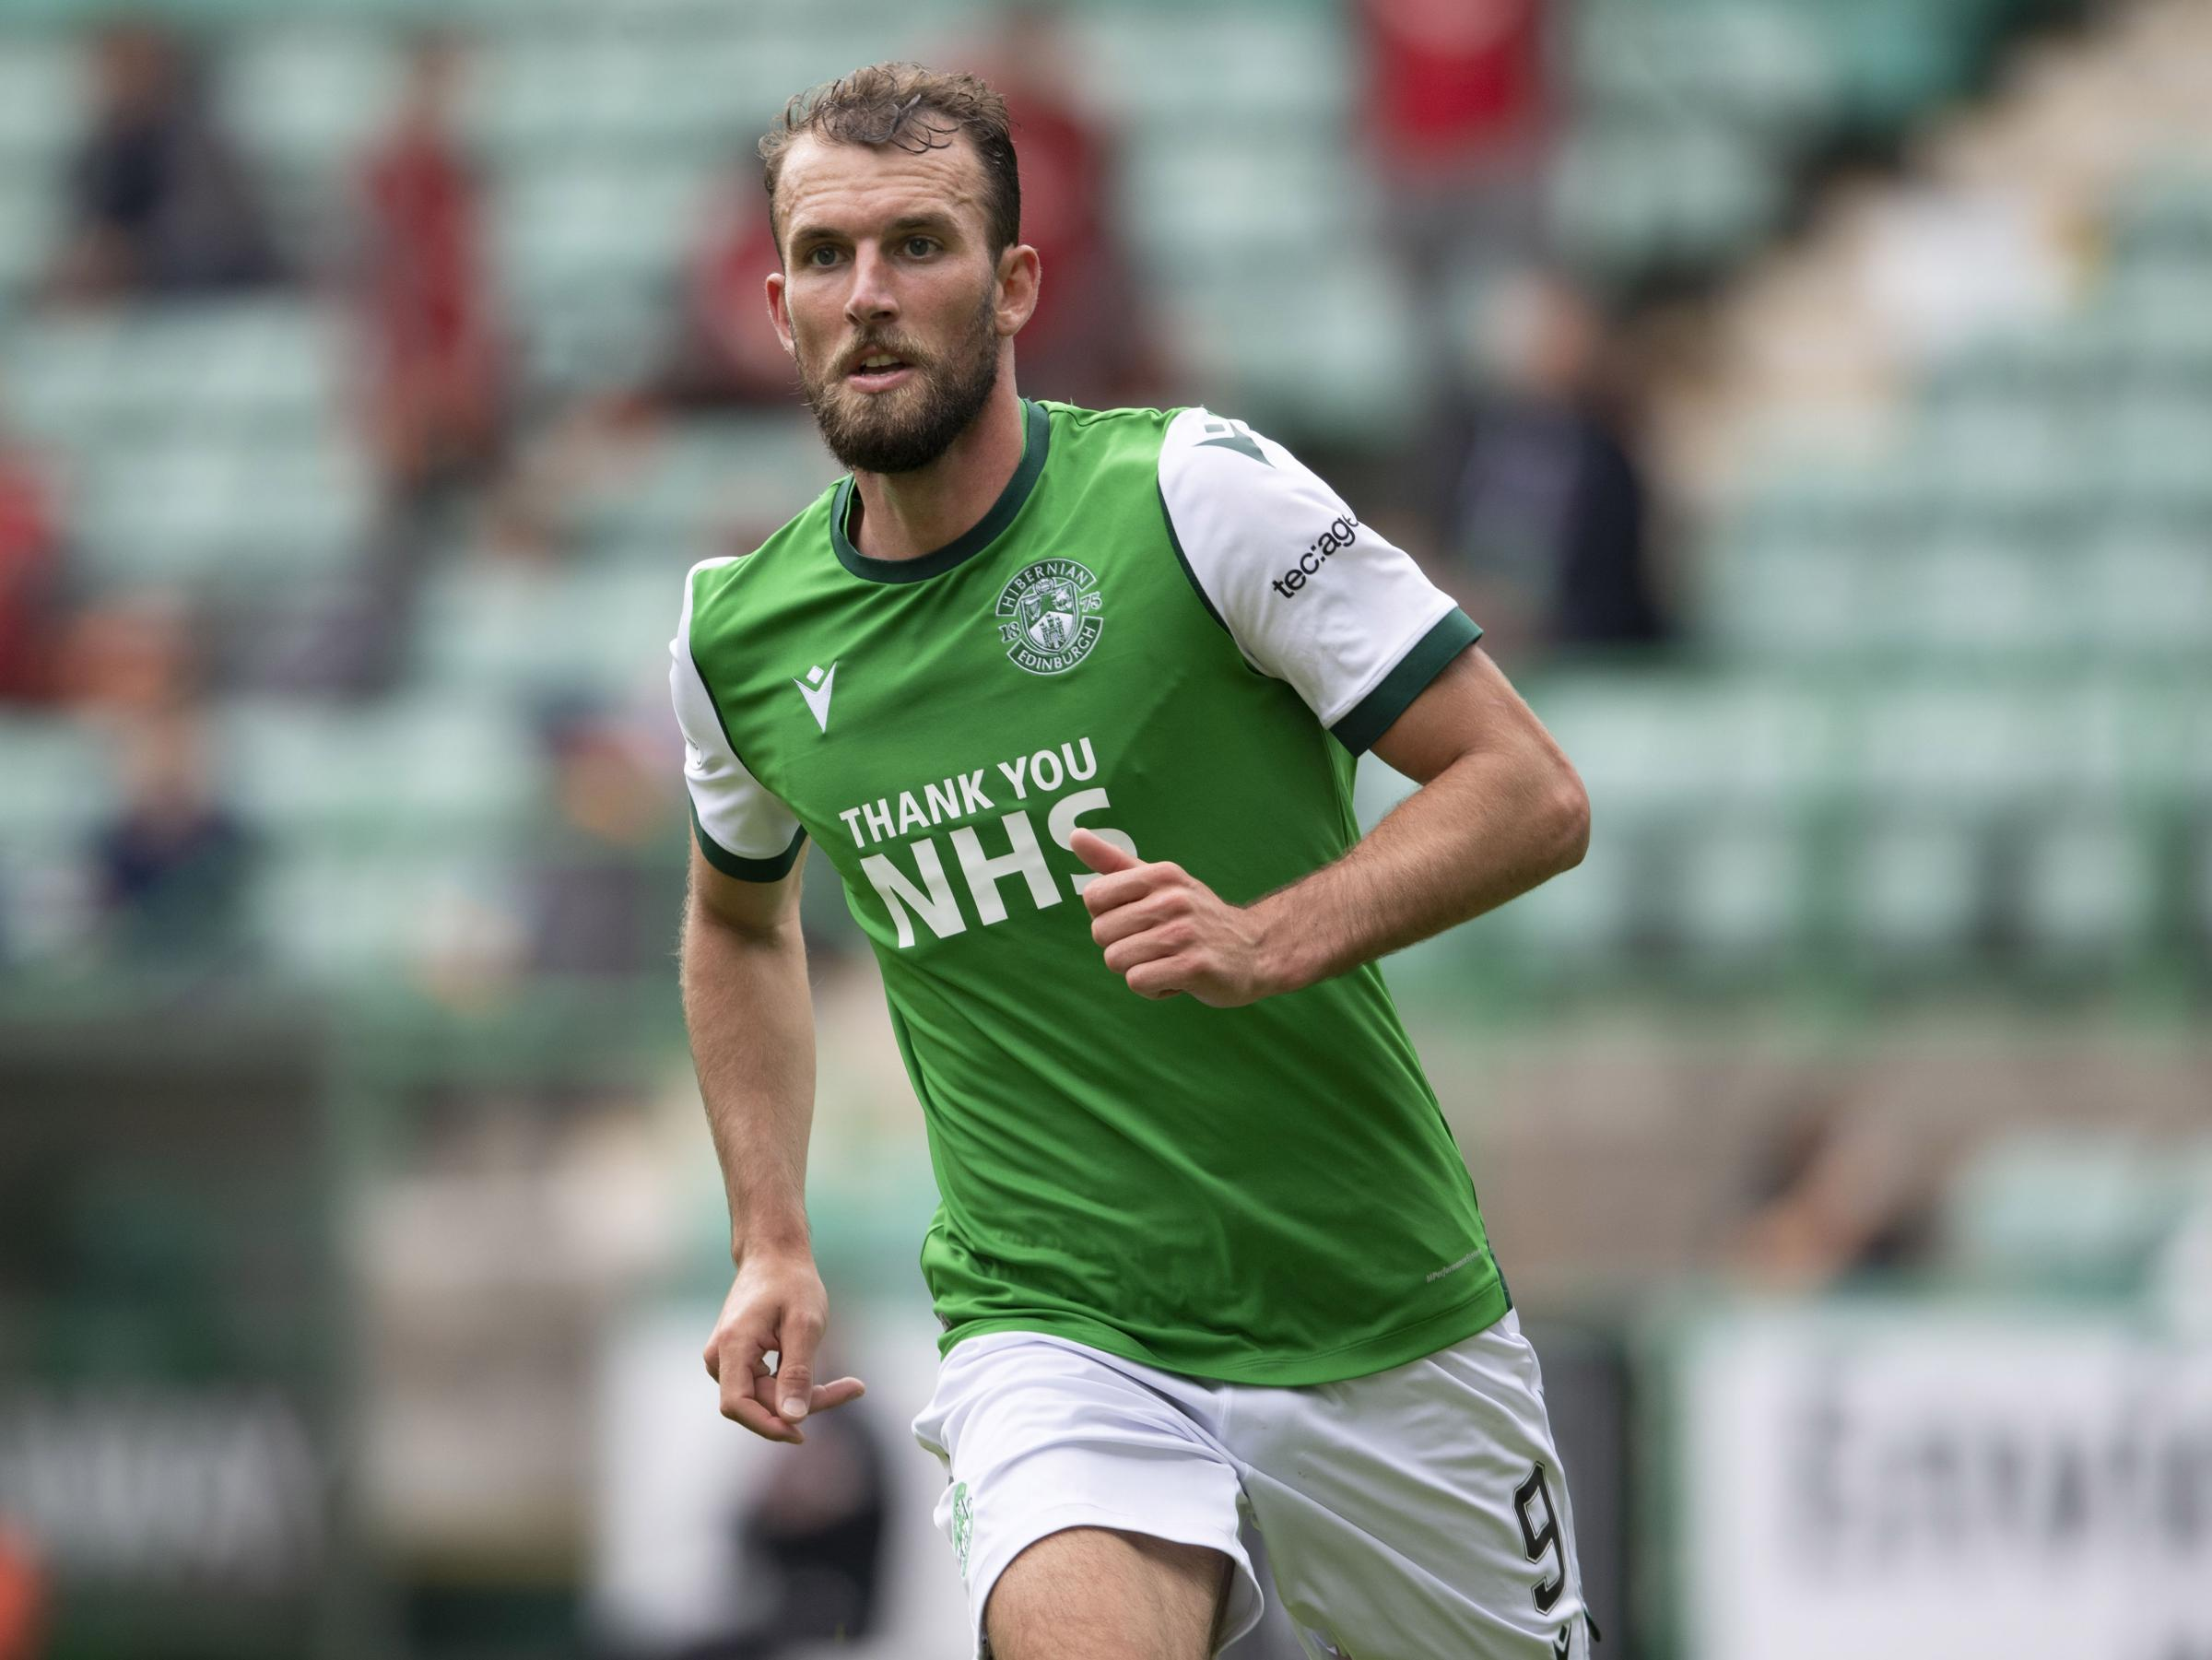 Hibs' Christian Doidge on the training ground routine that sealed win over Accies